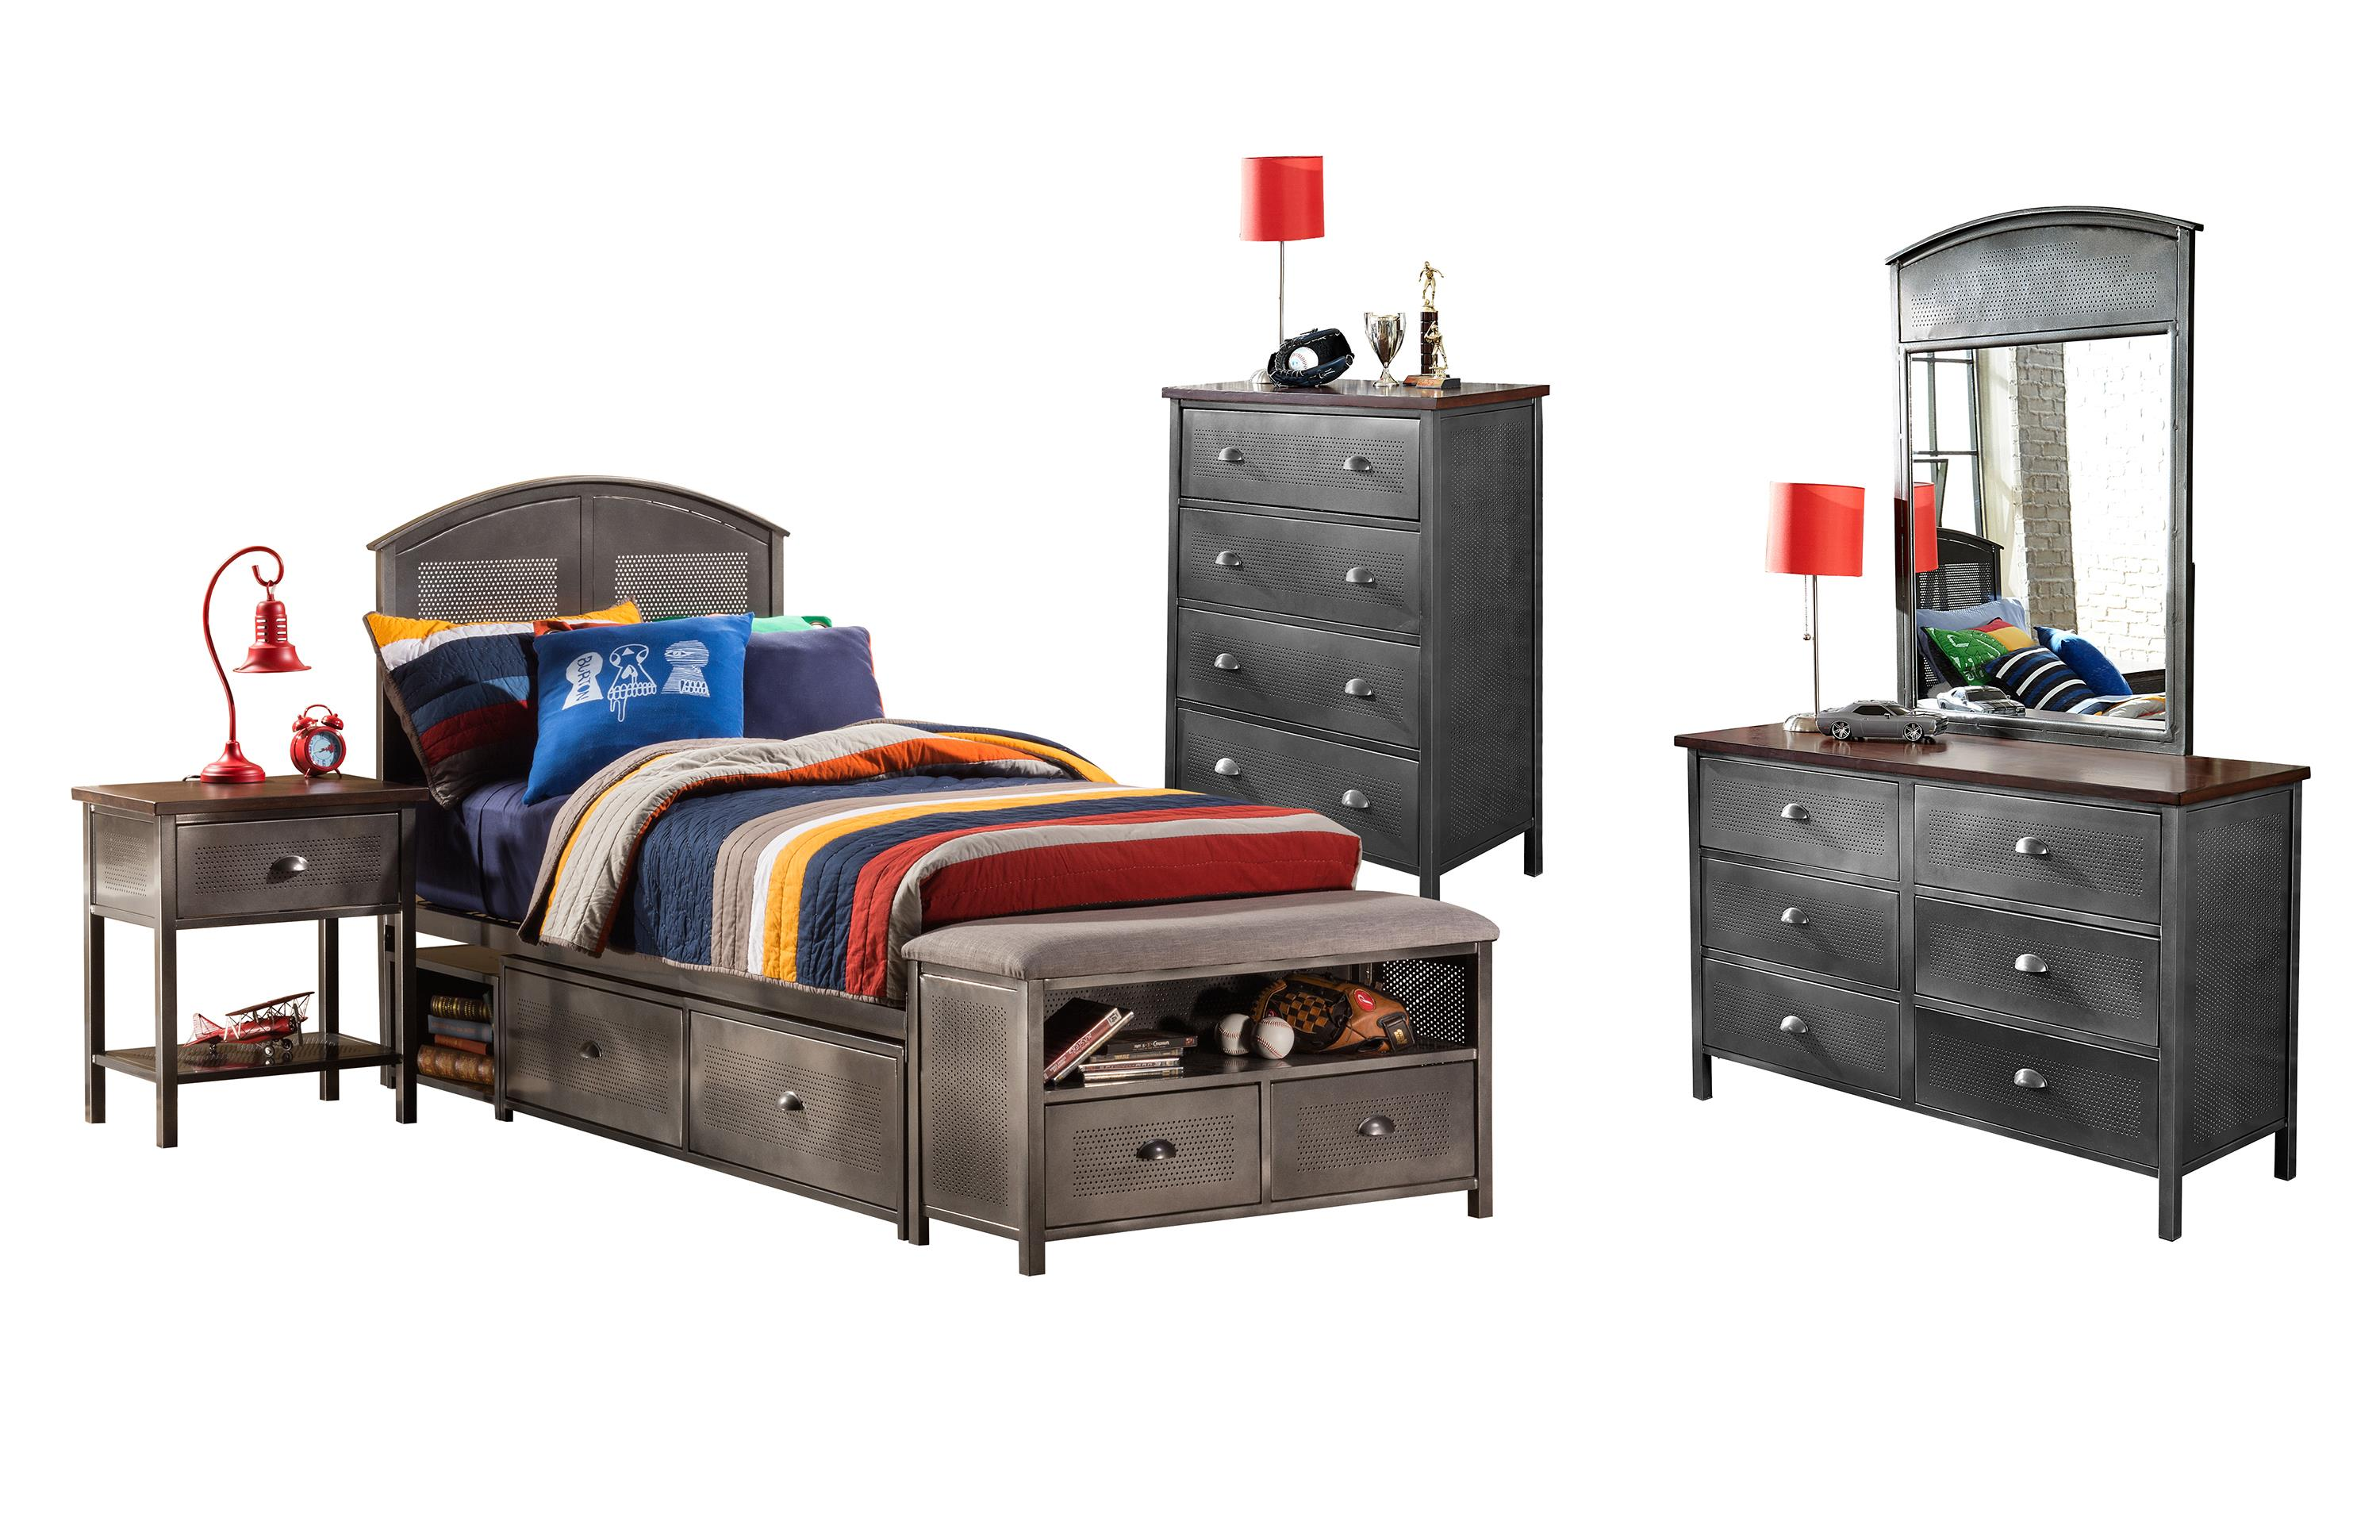 Urban Quarters Five Piece Full Storage Bed Set by Hillsdale at Simply Home by Lindy's